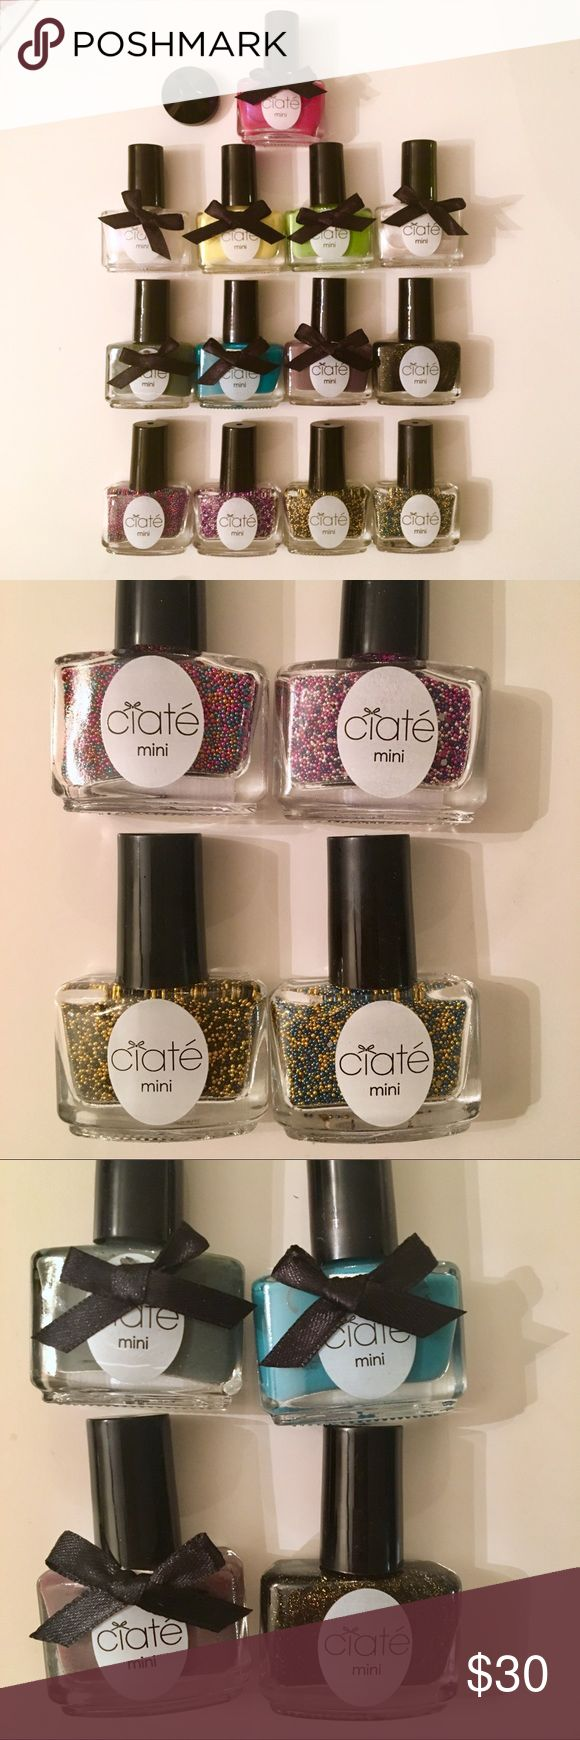 Ciate London mini nail polishes & caviar nails Lot of 13 nail polishes, comes with funnel because of the caviar nail polishes. All brand new.  Shades are: candyshop, bumble bee, prom queen, sundance, vintage, fade to greige, twilight, headliner, big yellow taxi, halo, angel wings, mojito and cupcake queen 😍 ciate london Makeup